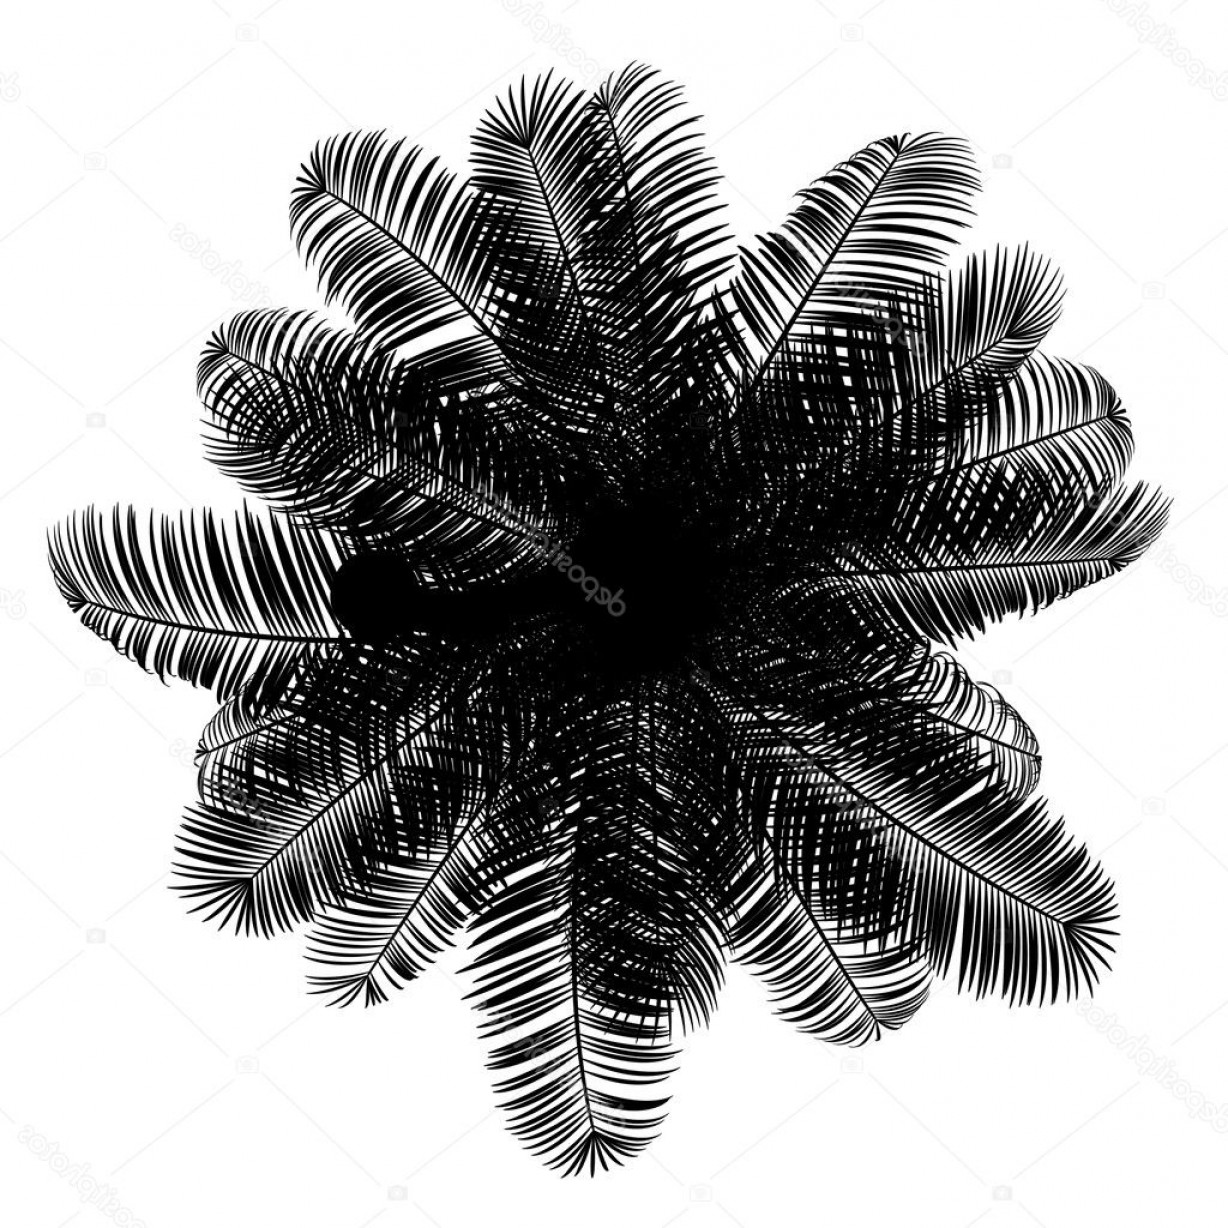 Coconut tree clipart plan picture free download Stock Photo Top View Silhouette Of Coconut | SOIDERGI picture free download